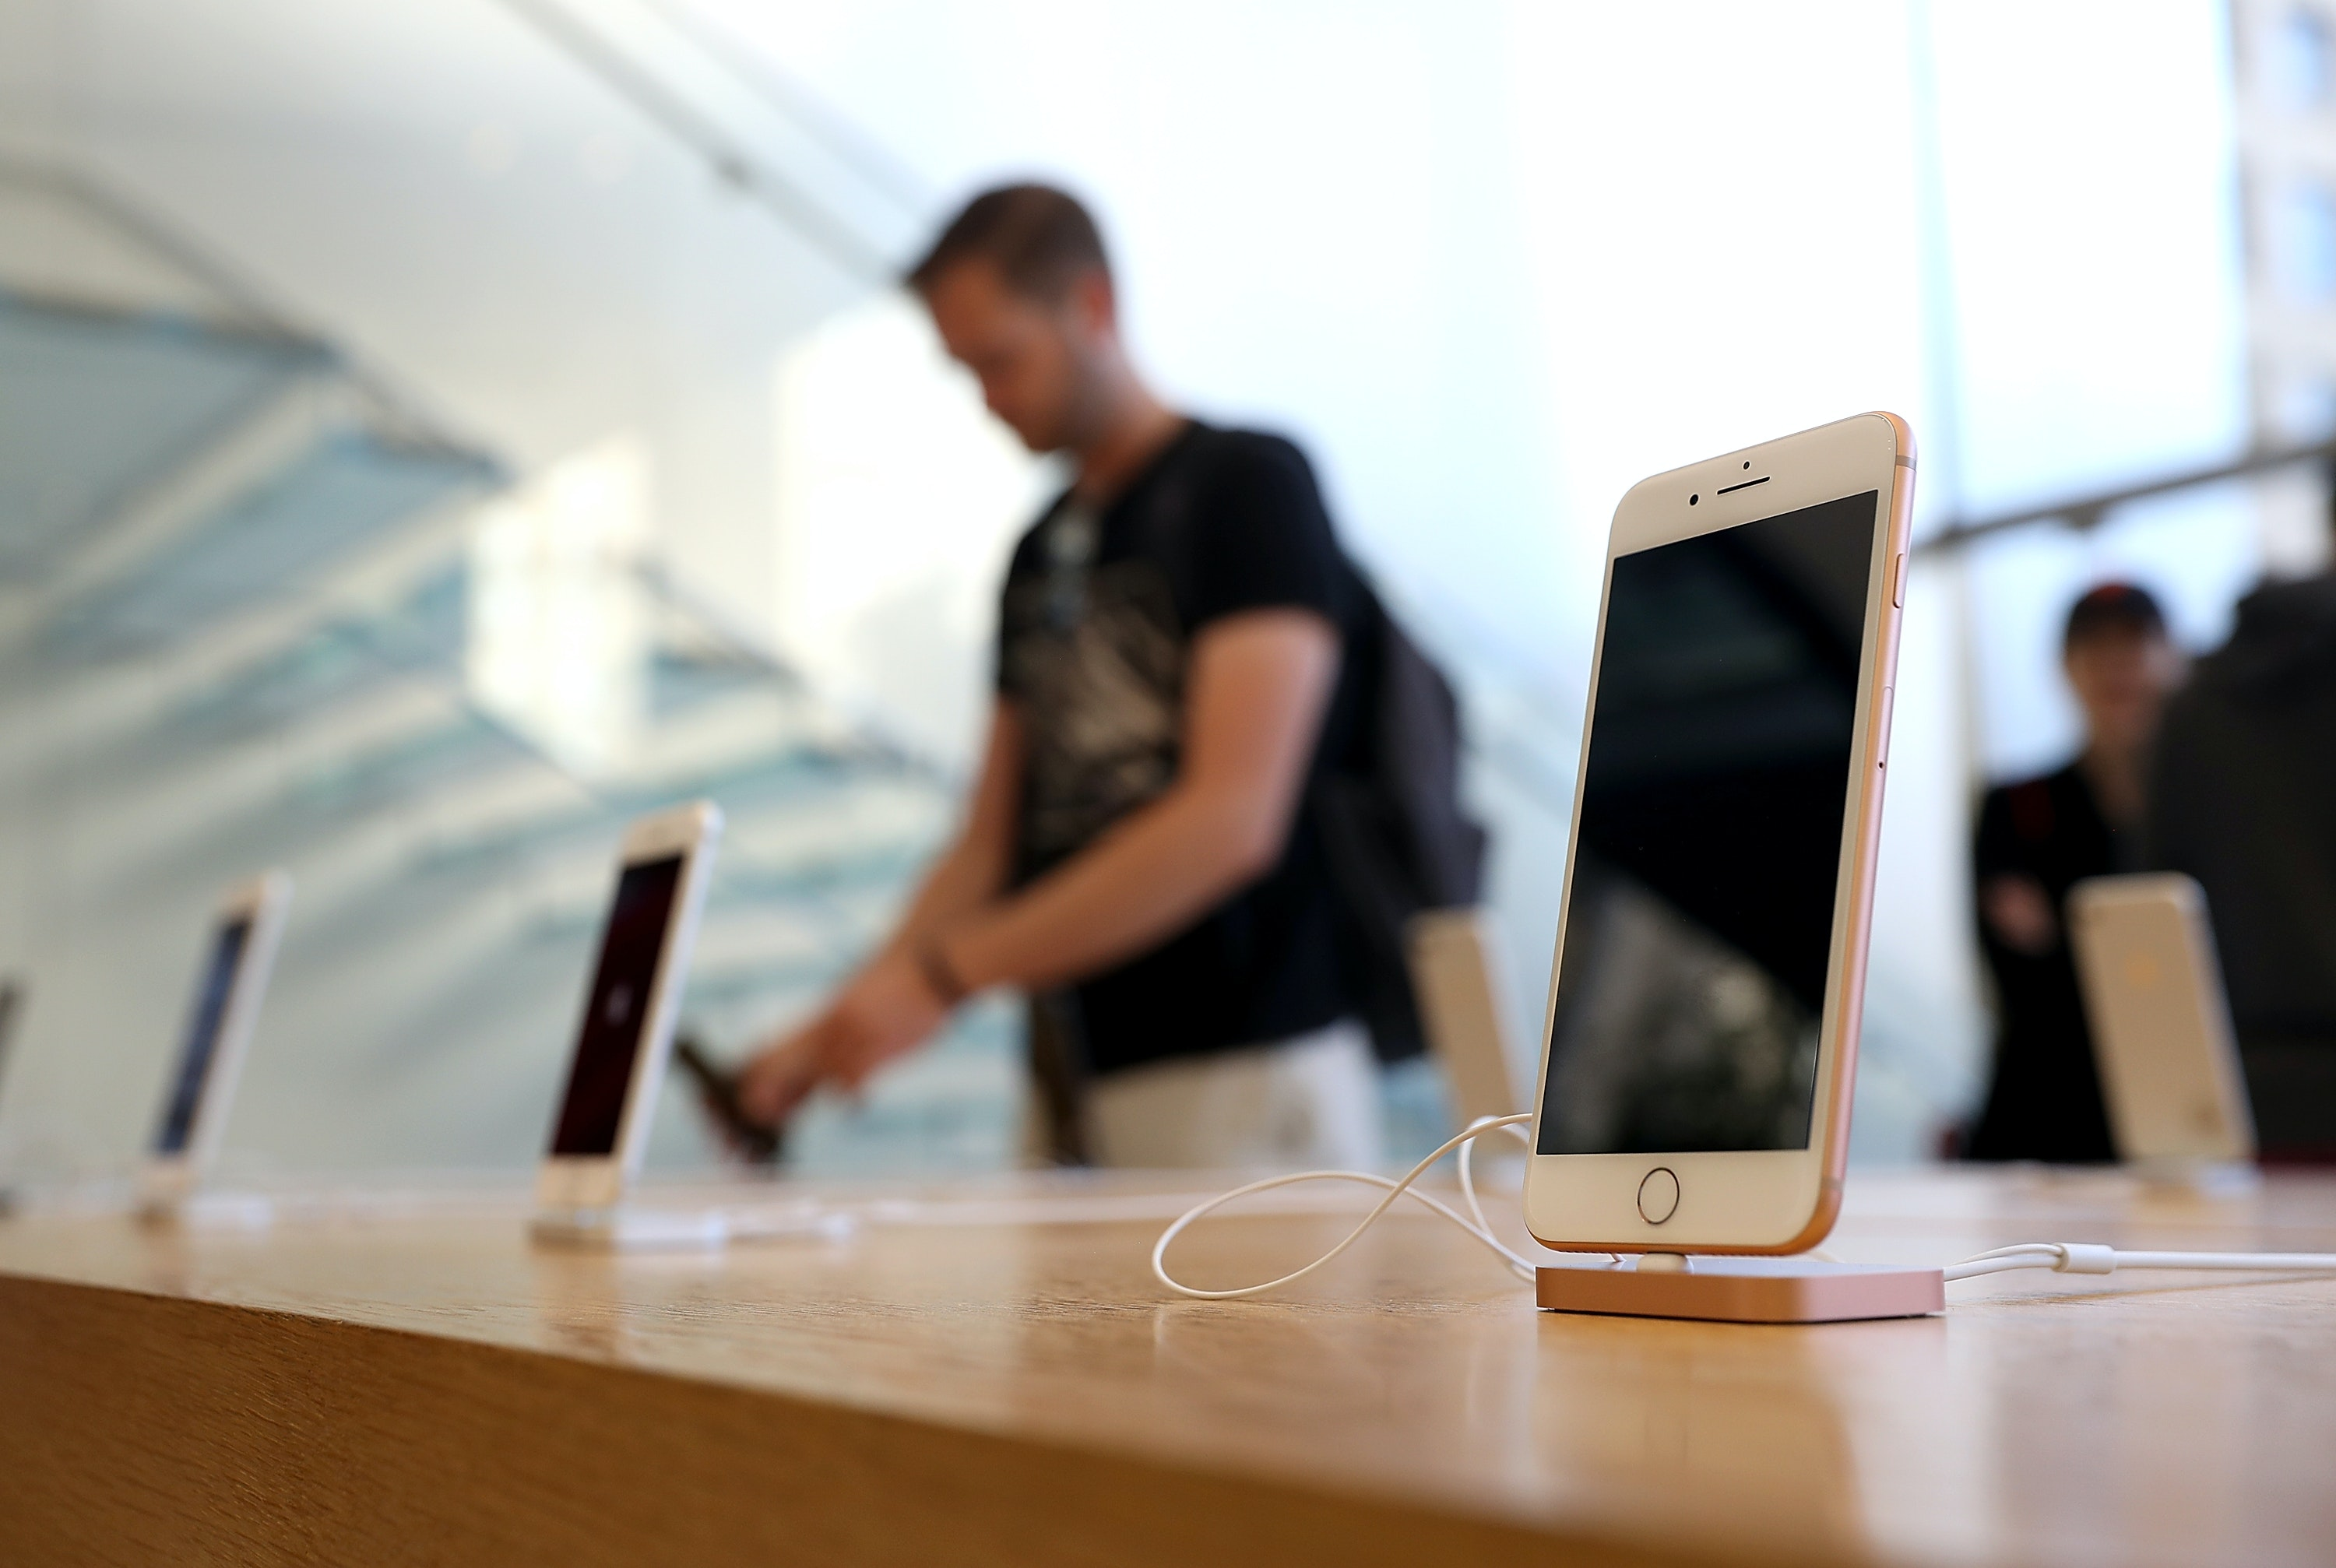 the new apple iphone 8 is displayed at an apple store on september 22 2017 in san francisco califojpegautou003d formatcompressu0026wu003d1200